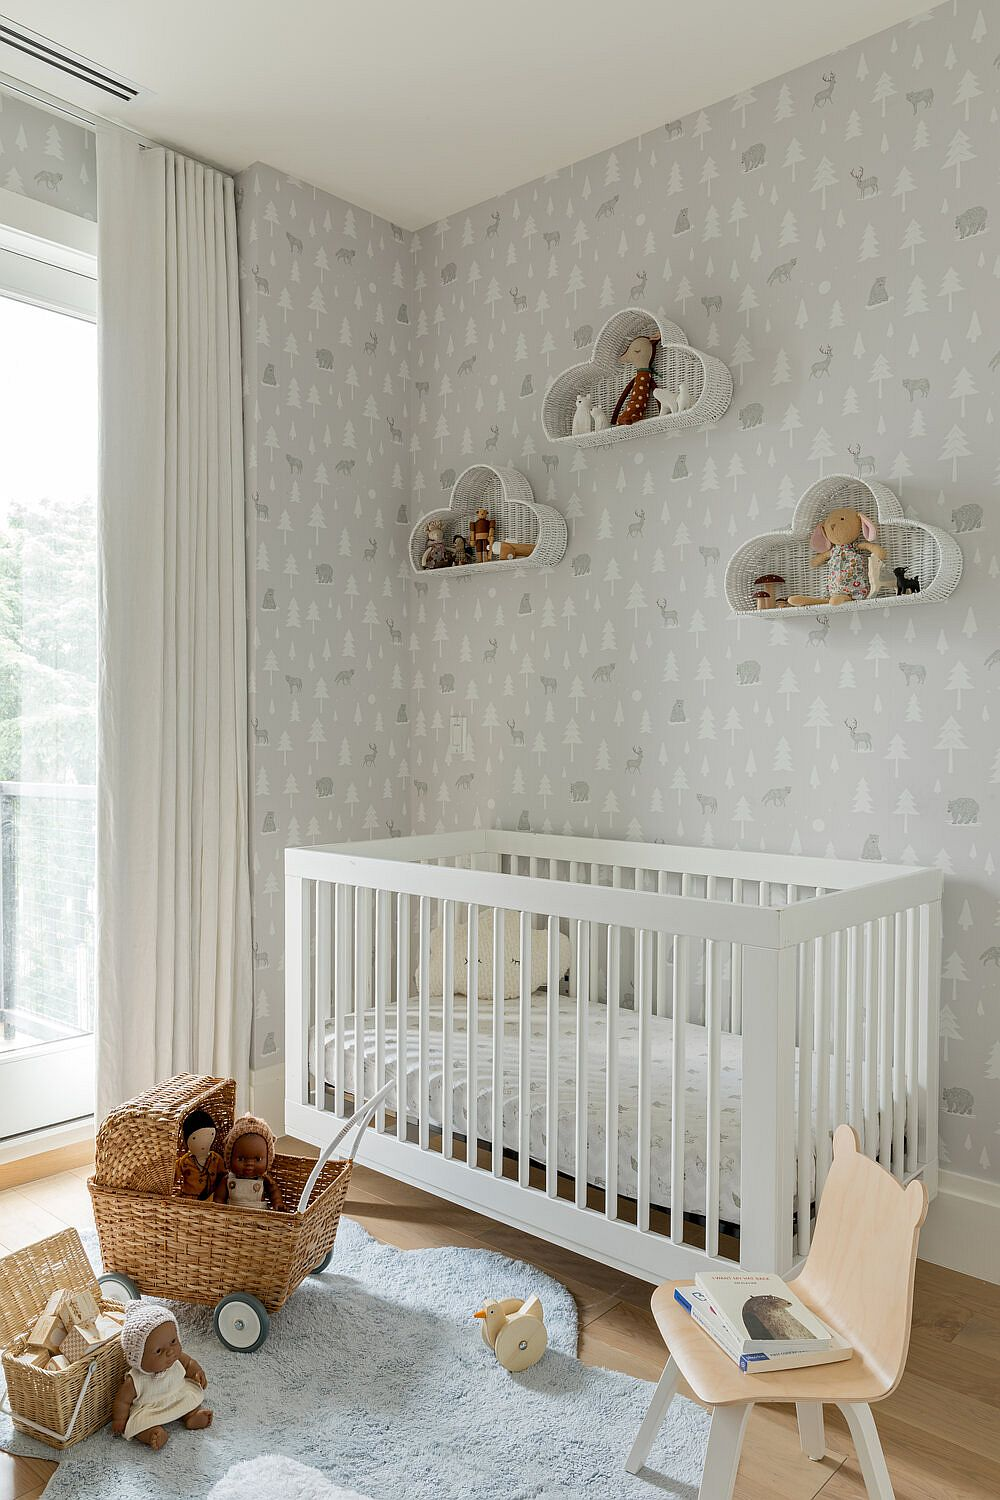 Wallpaper brings pattern to this contemporary nursery without altering its color scheme